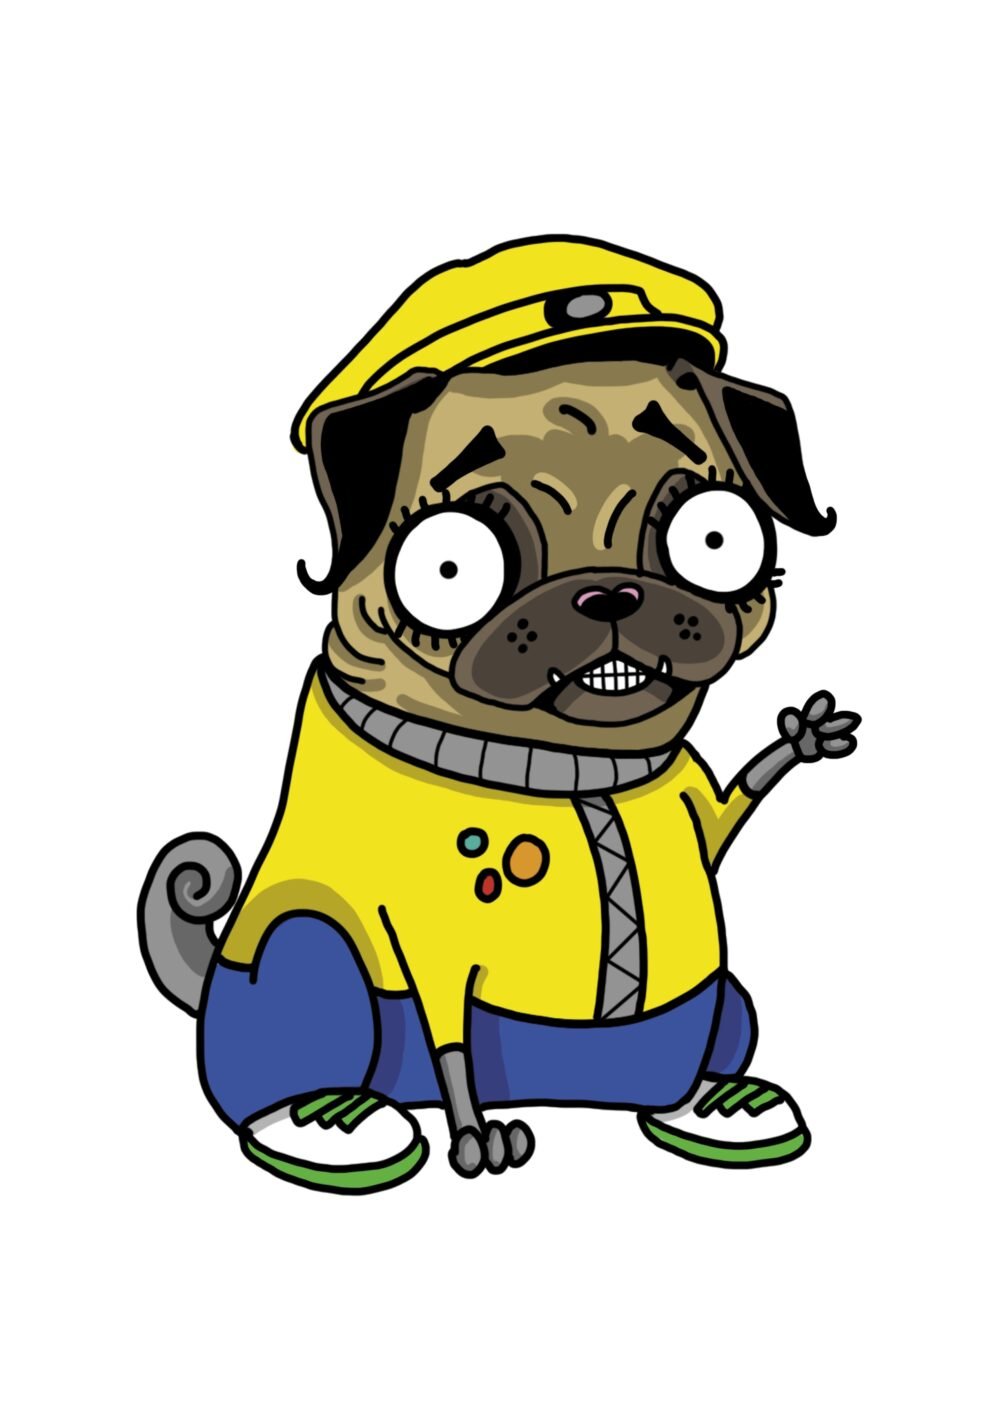 The final cartoon character design for Taser the pug